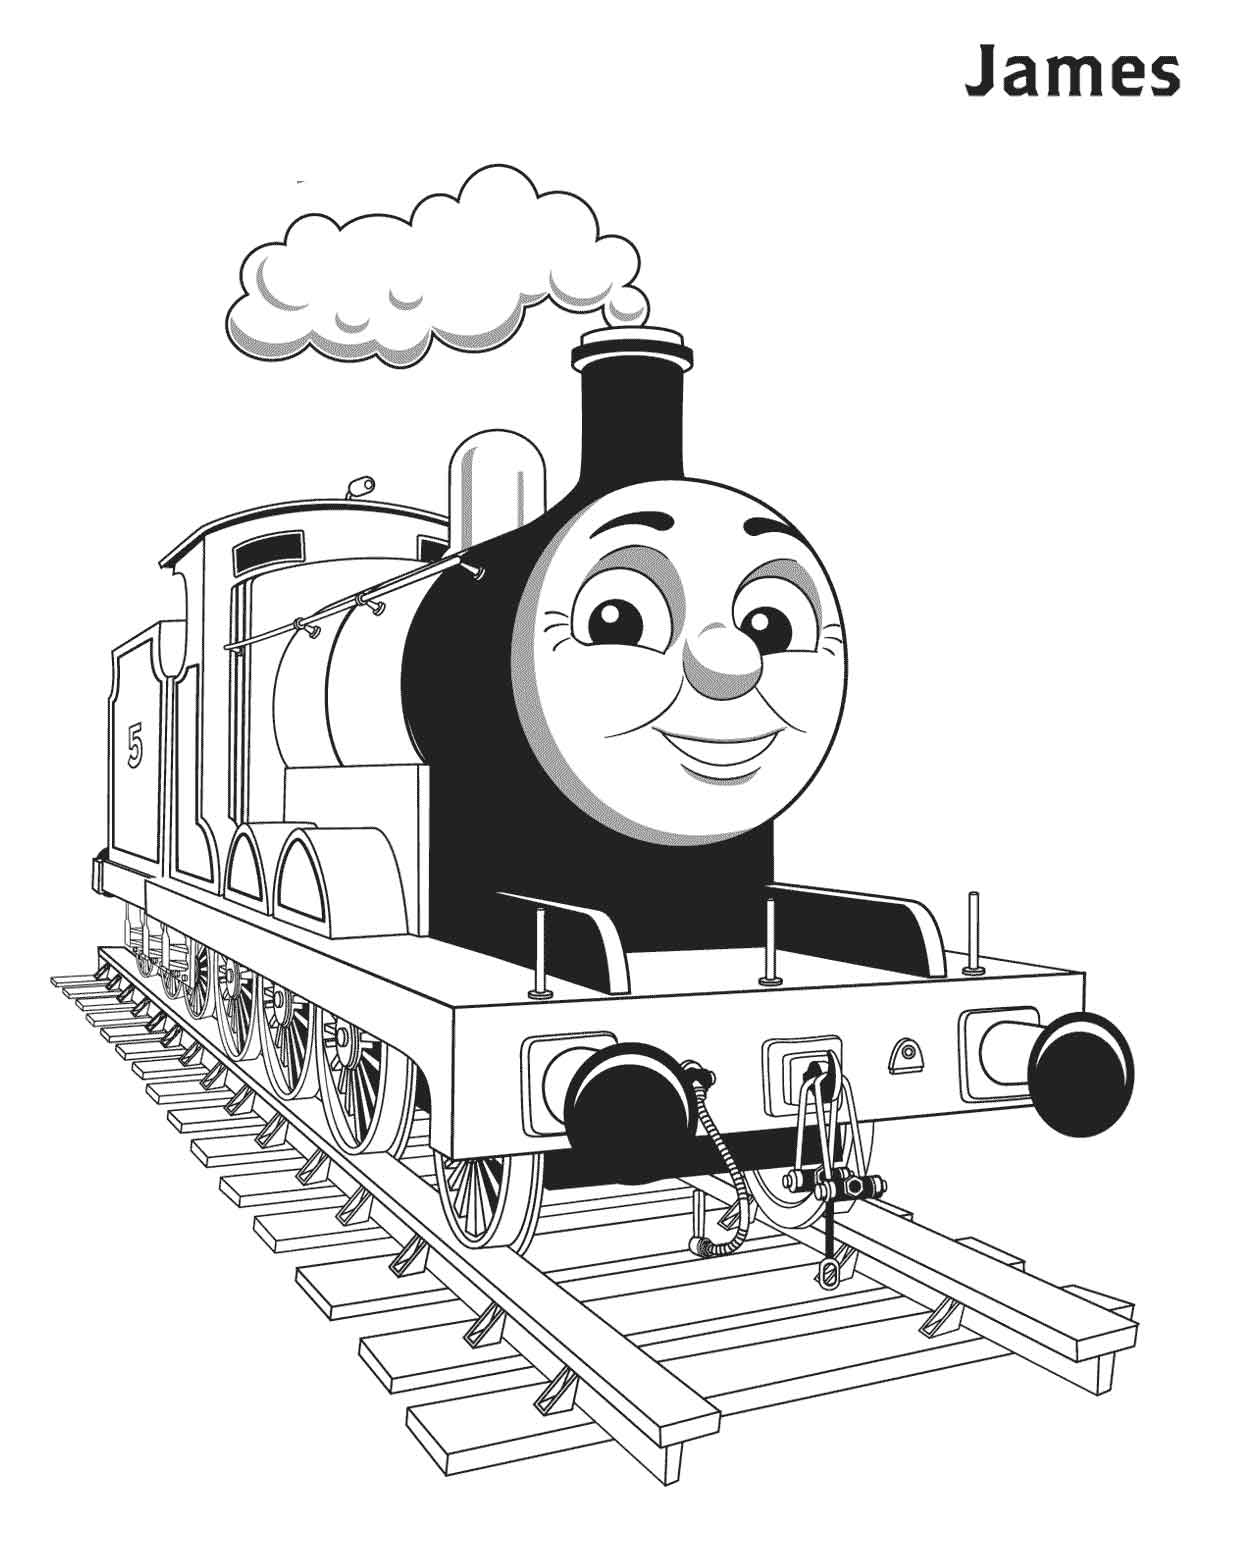 coloring pages of thomas and friends thomas and friends coloring pages coloring pages to of coloring thomas pages and friends